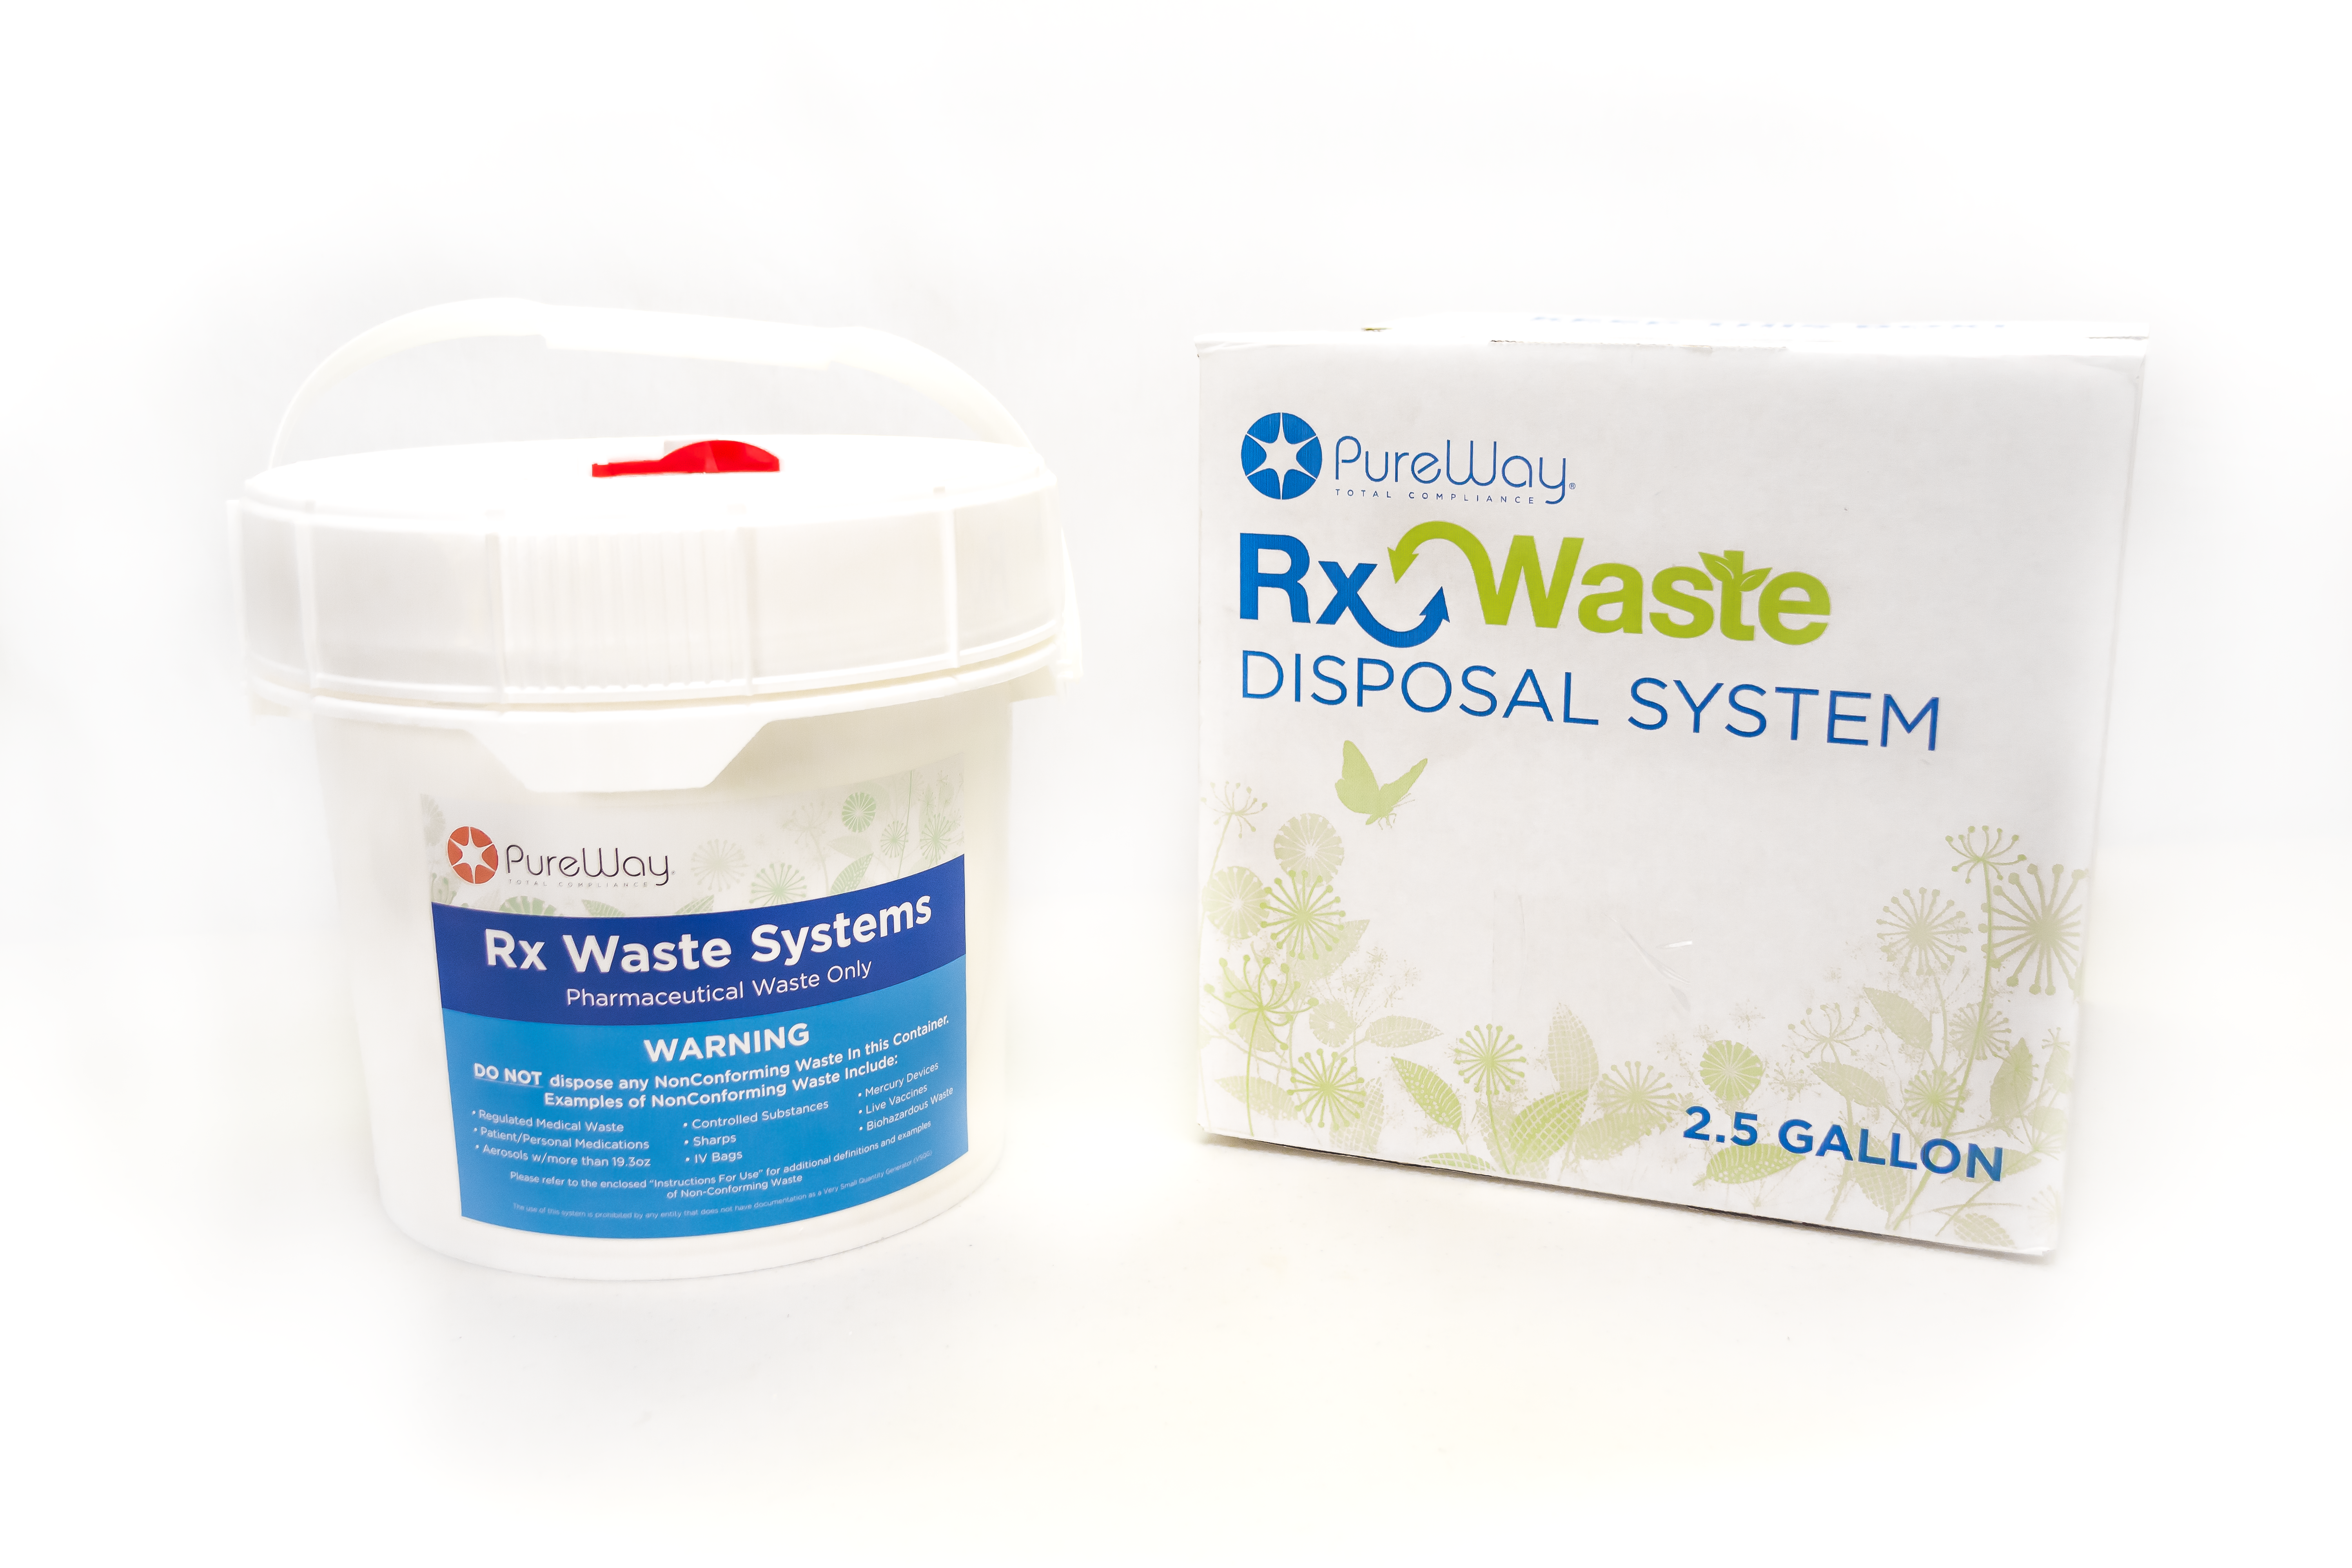 Rx Waste Disposal